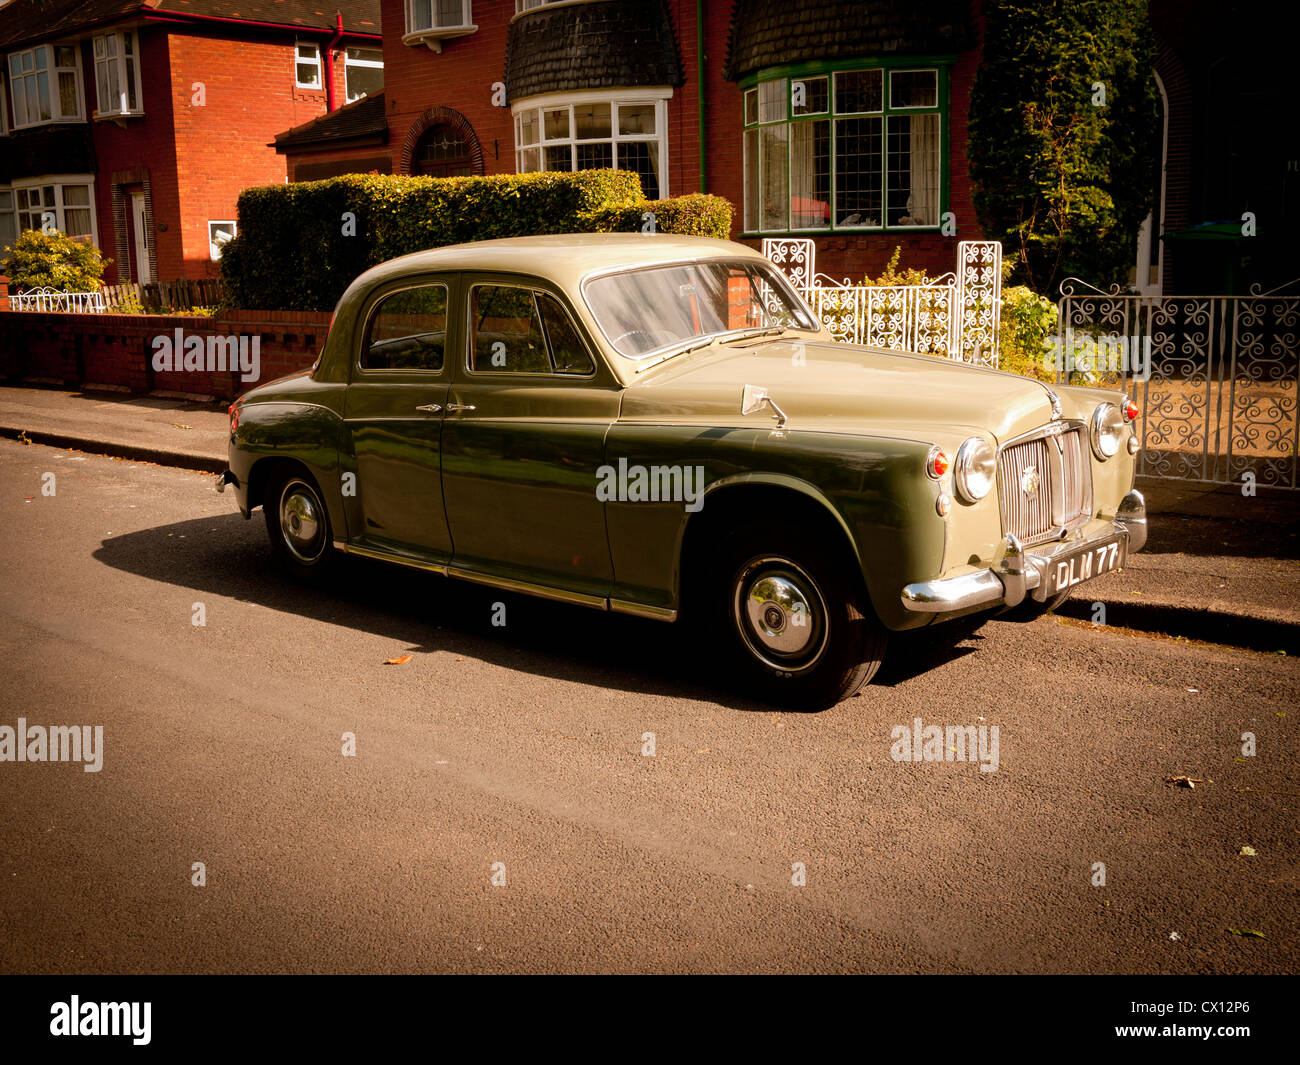 Rover P4 Saloon Car Out Side 1940s Styled House England Uk Stock